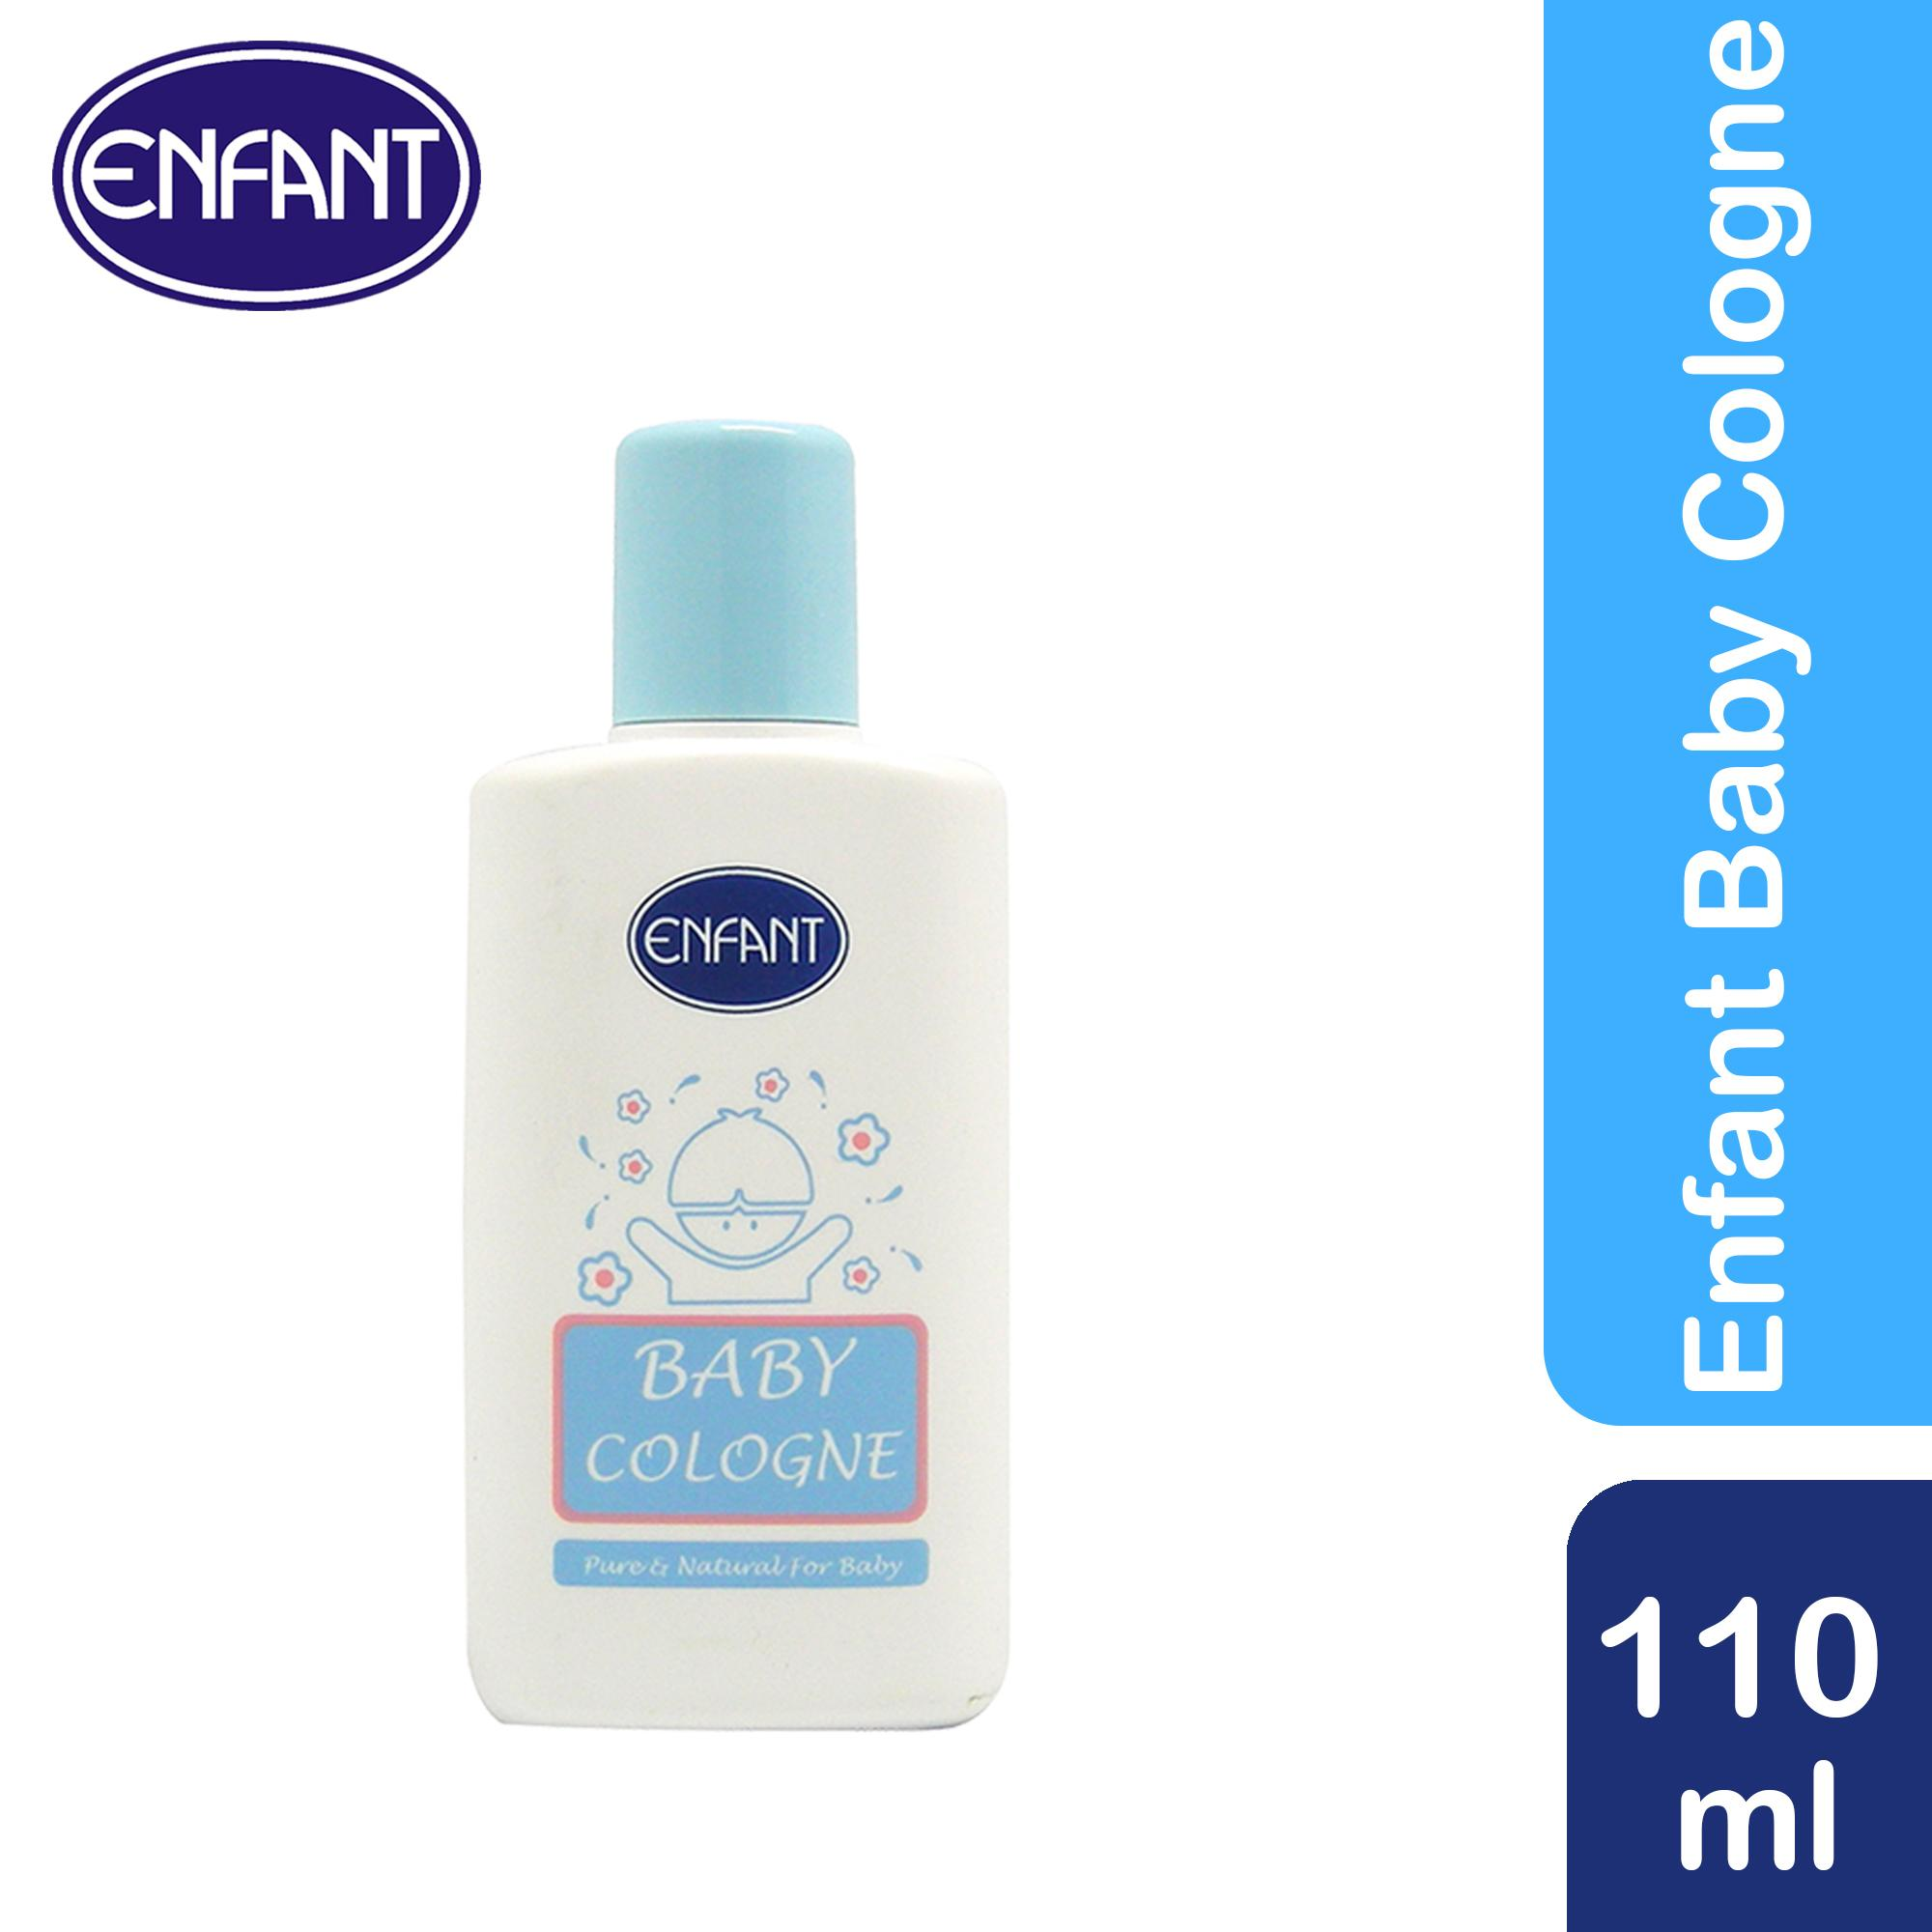 Enfant Baby Cologne By Enfant Specialty Shop.